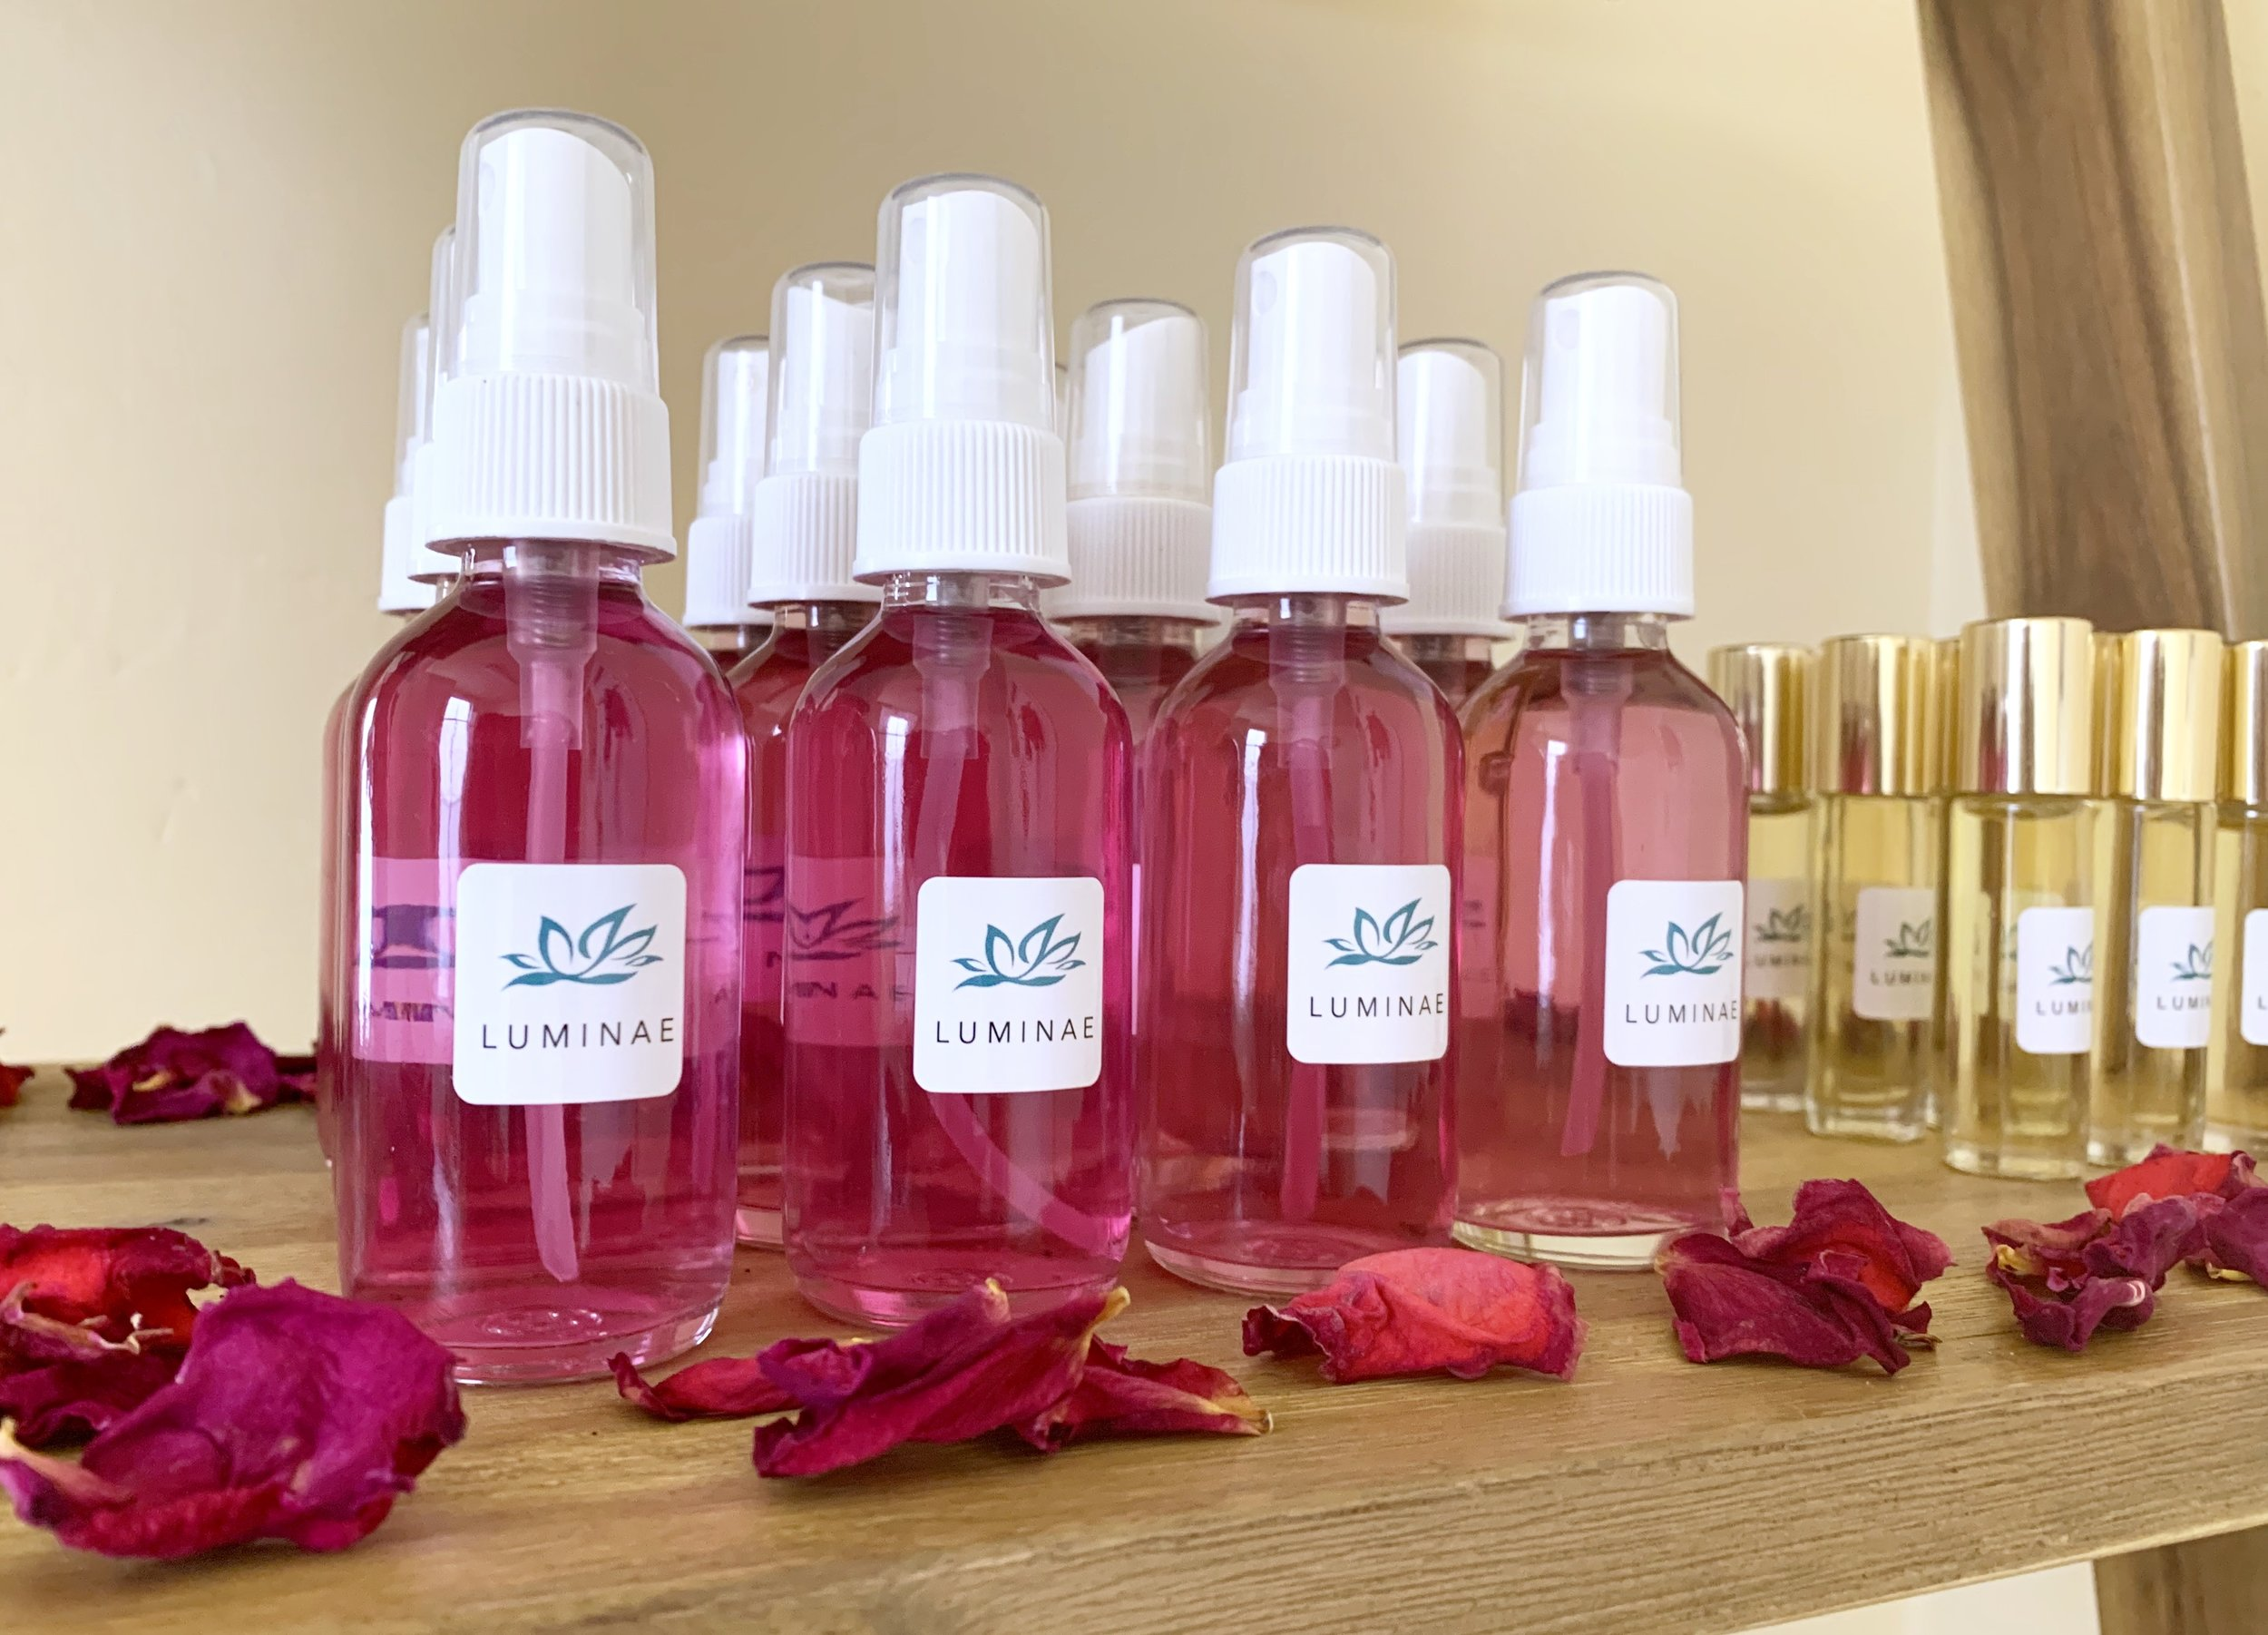 Garden Rosewater - Luminae Garden Rosewater offers the high vibrational energy of the rose flower. Rosewater is perfect for a refreshing mist for nourishing the skin and opening the heart. This energy medicine and natural beauty product is available seasonally when the garden roses are in bloom.